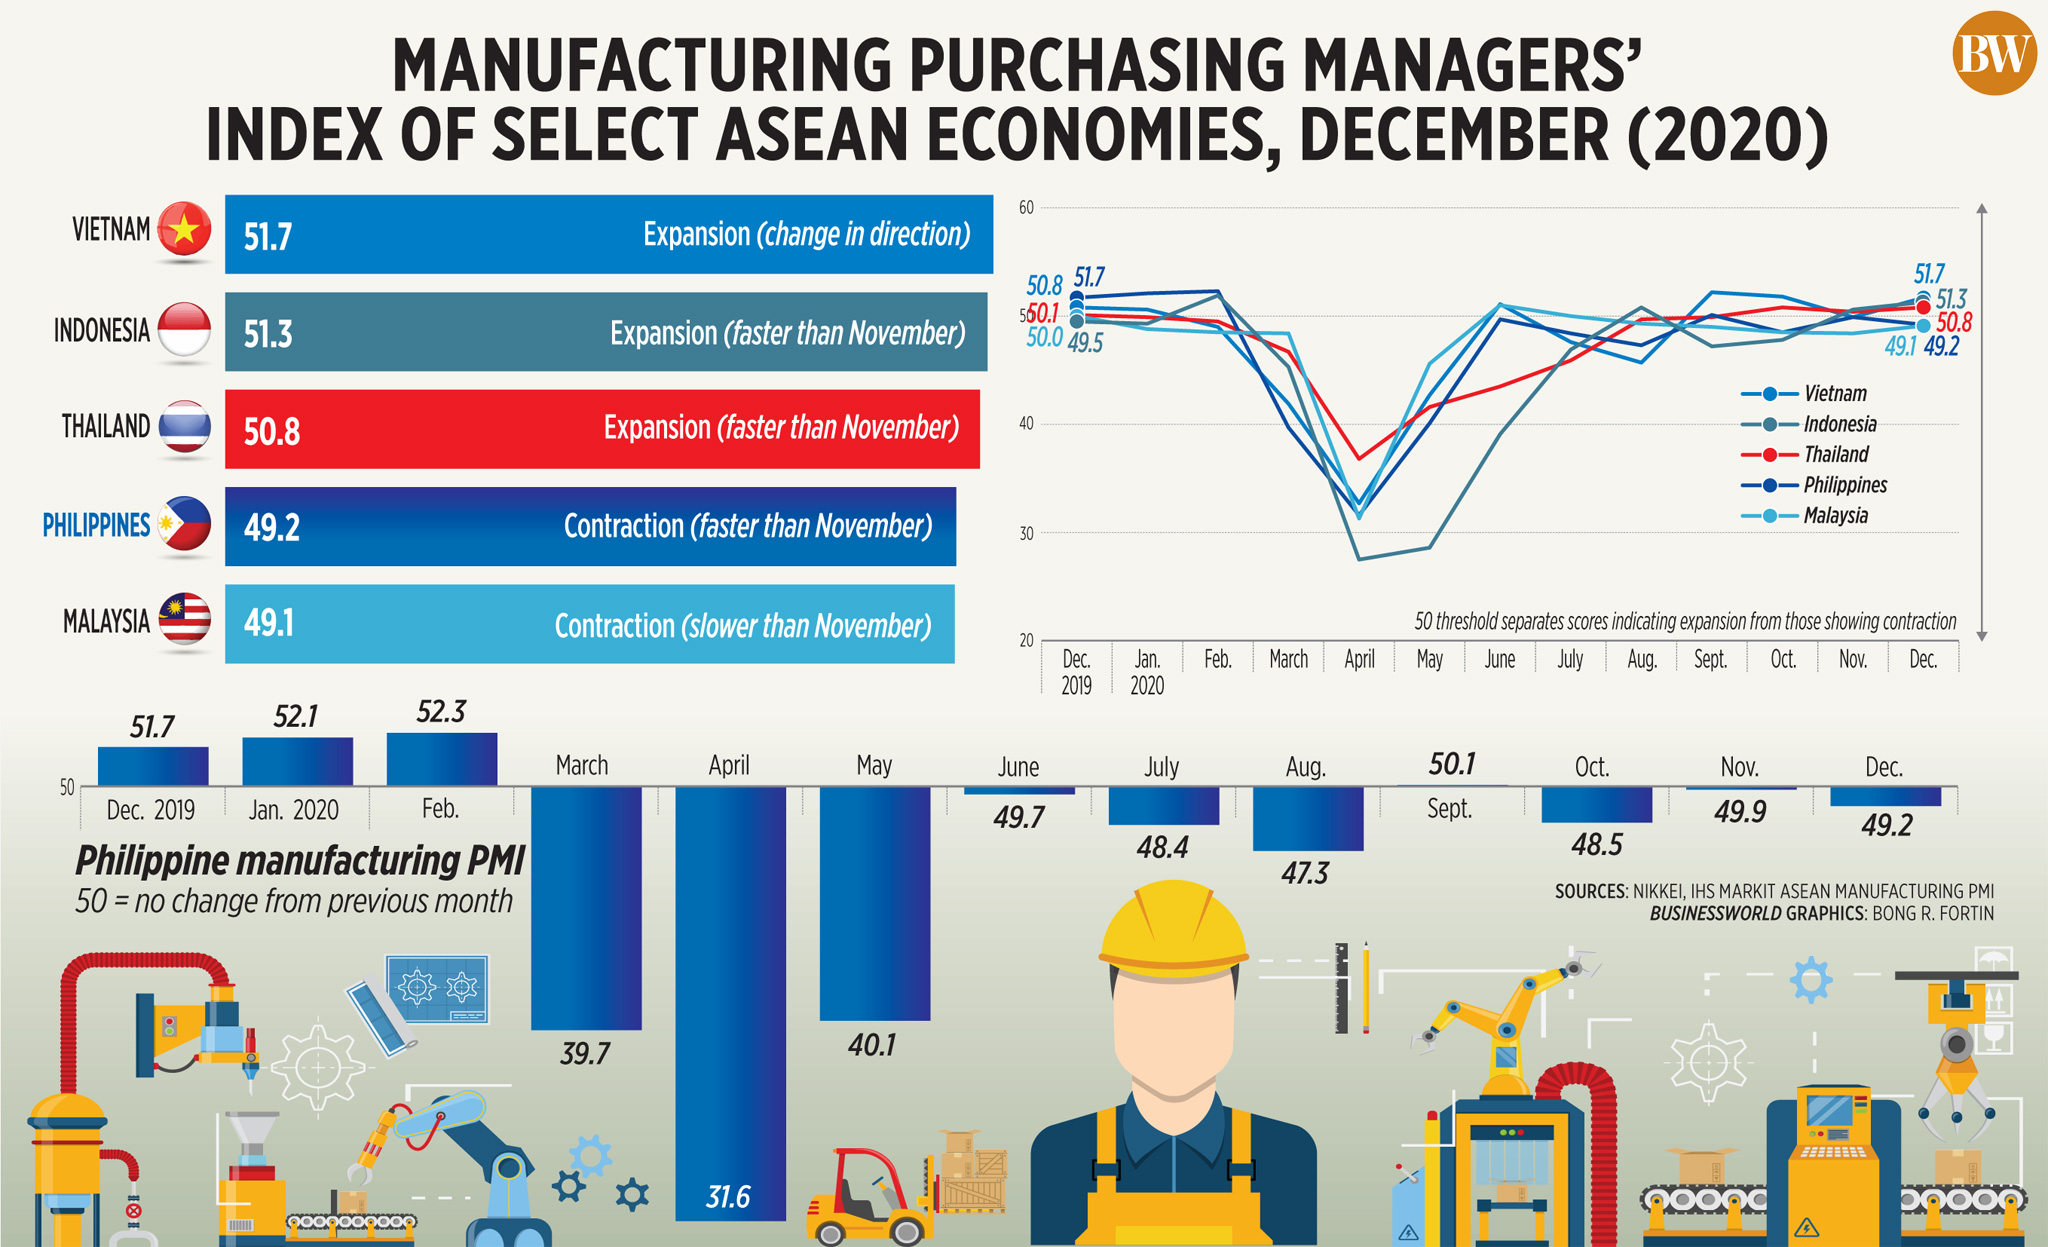 Manufacturing purchasing managers' index of select ASEAN economies, December (2020)